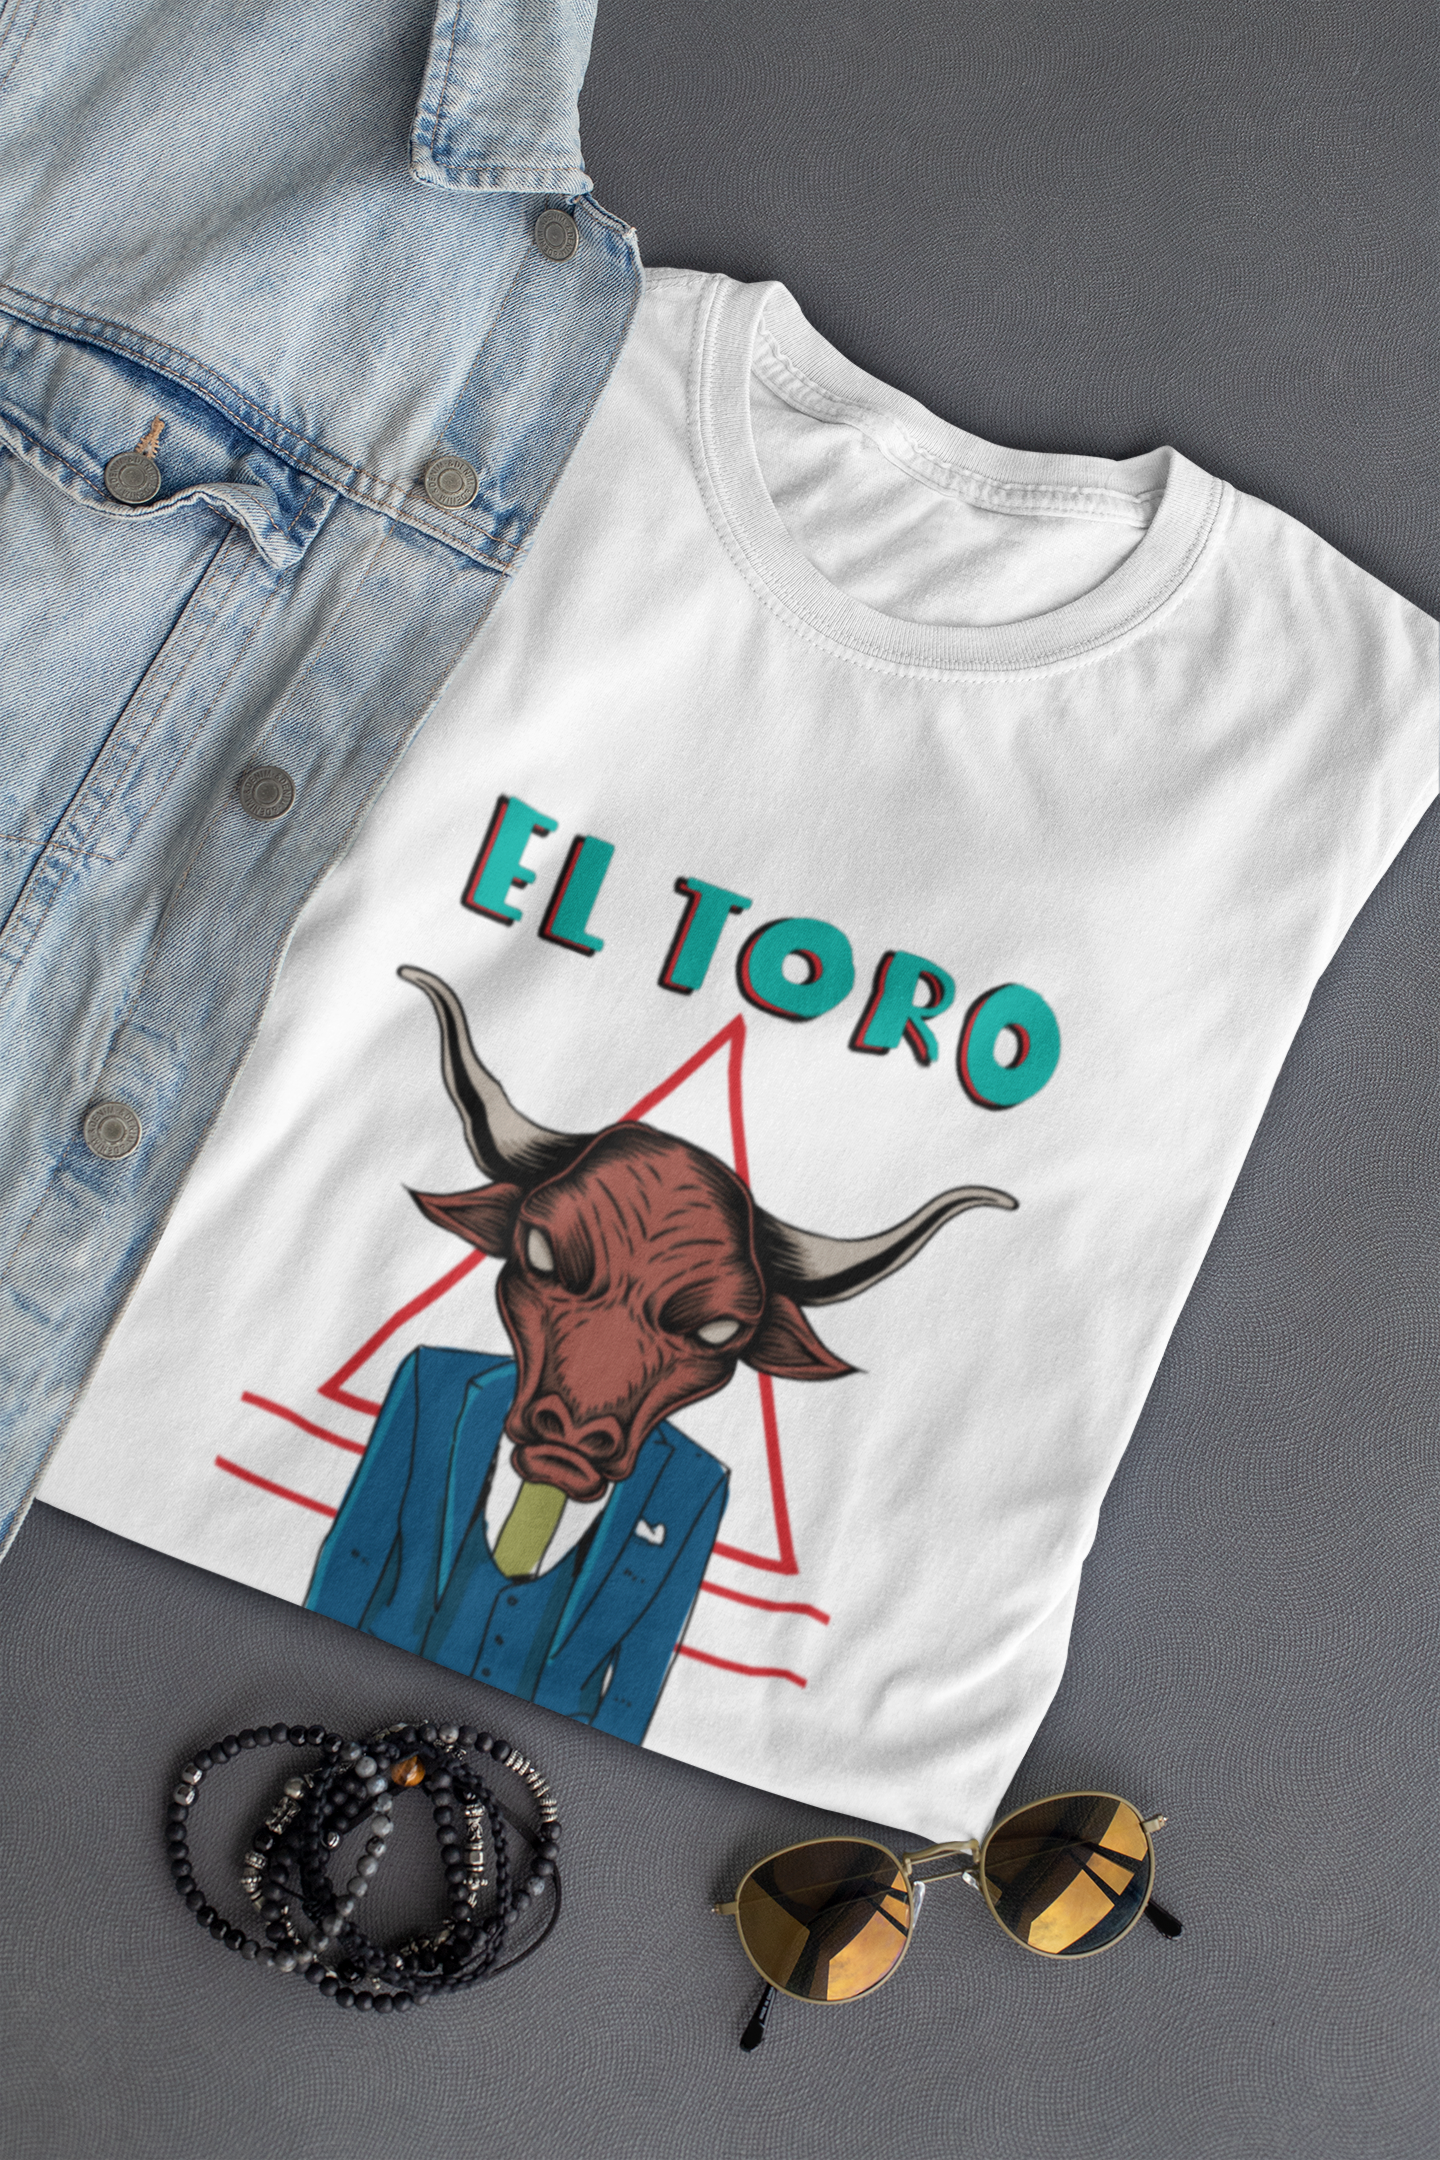 El Toro, Mad Face, The bull, Short-Sleeve Unisex T-Shirt | SIVAR ESTILO